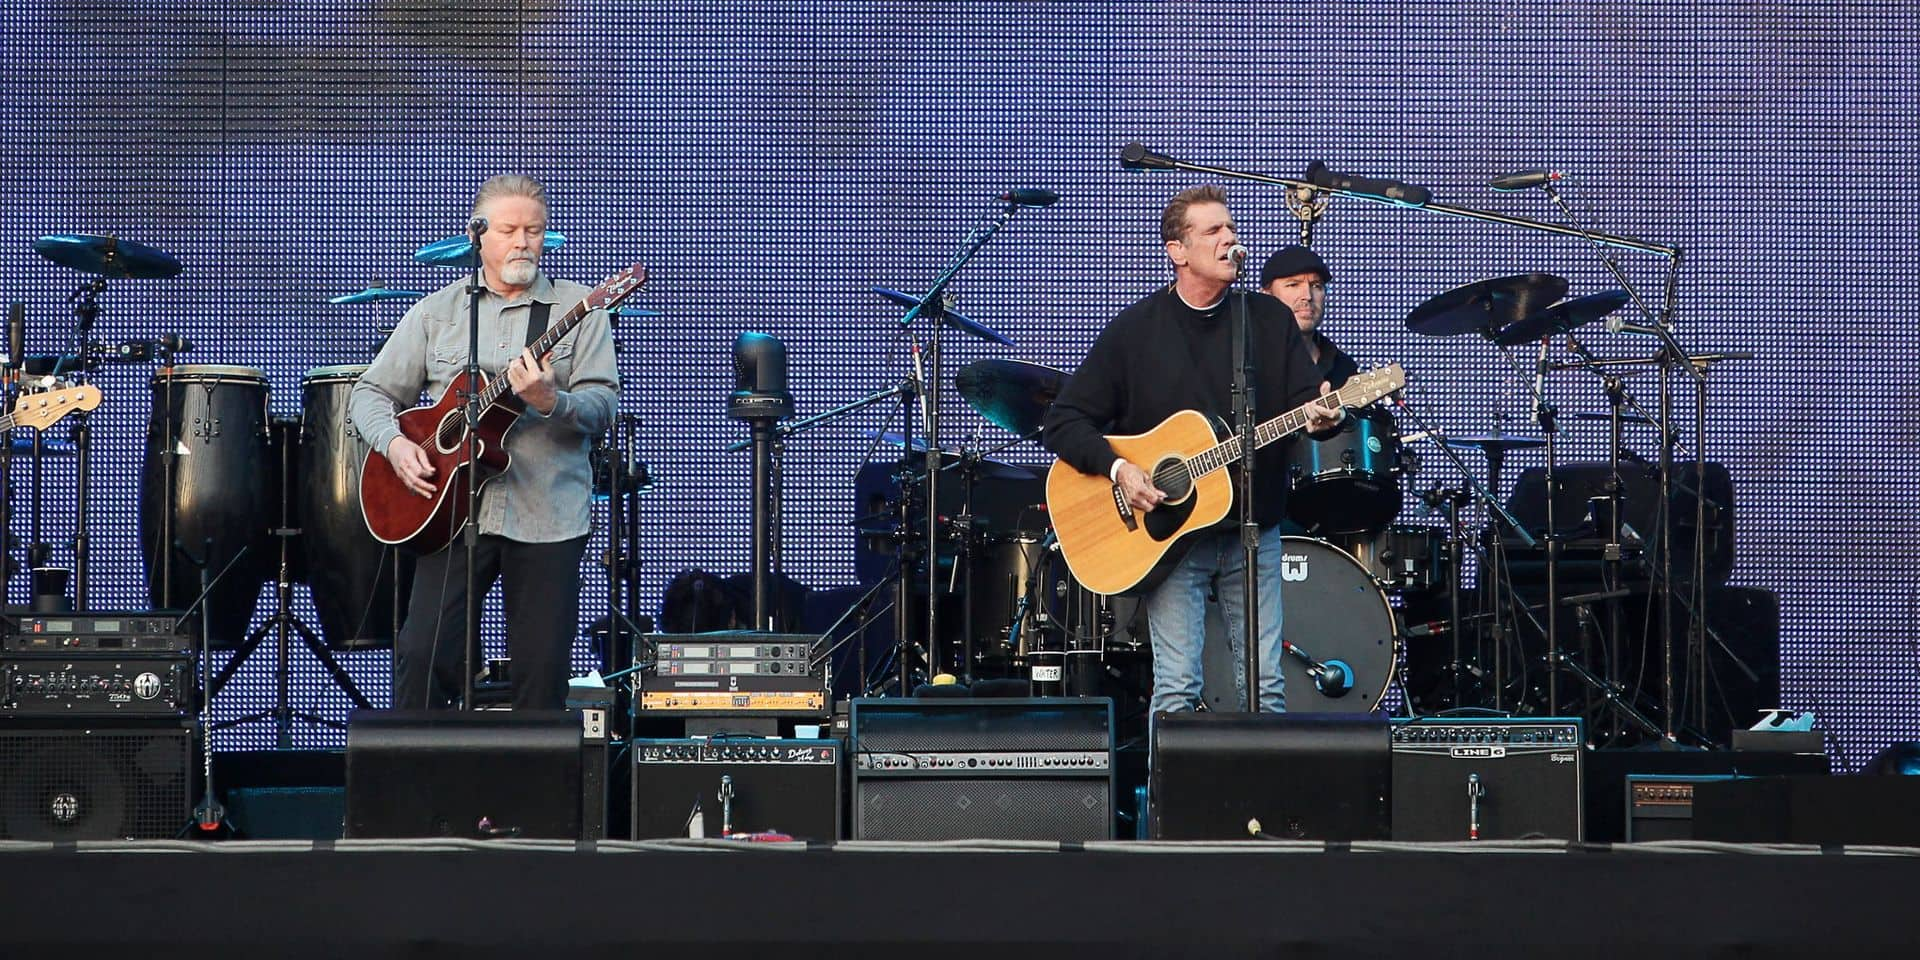 The Rock band 'Eagles' - Timothy B. Schmit (L-R), Don Henley, Glenn Frey und Joe Walsh - perform on stage at the band's first concert of the German tour at the 'Bowling Green' in Wiesbaden, Germany, 19 June 2011. The Eagles started their tour under the title 'Long Road Out Of Eden'. Photo: Fredrik von Erichsen Reporters / DPA